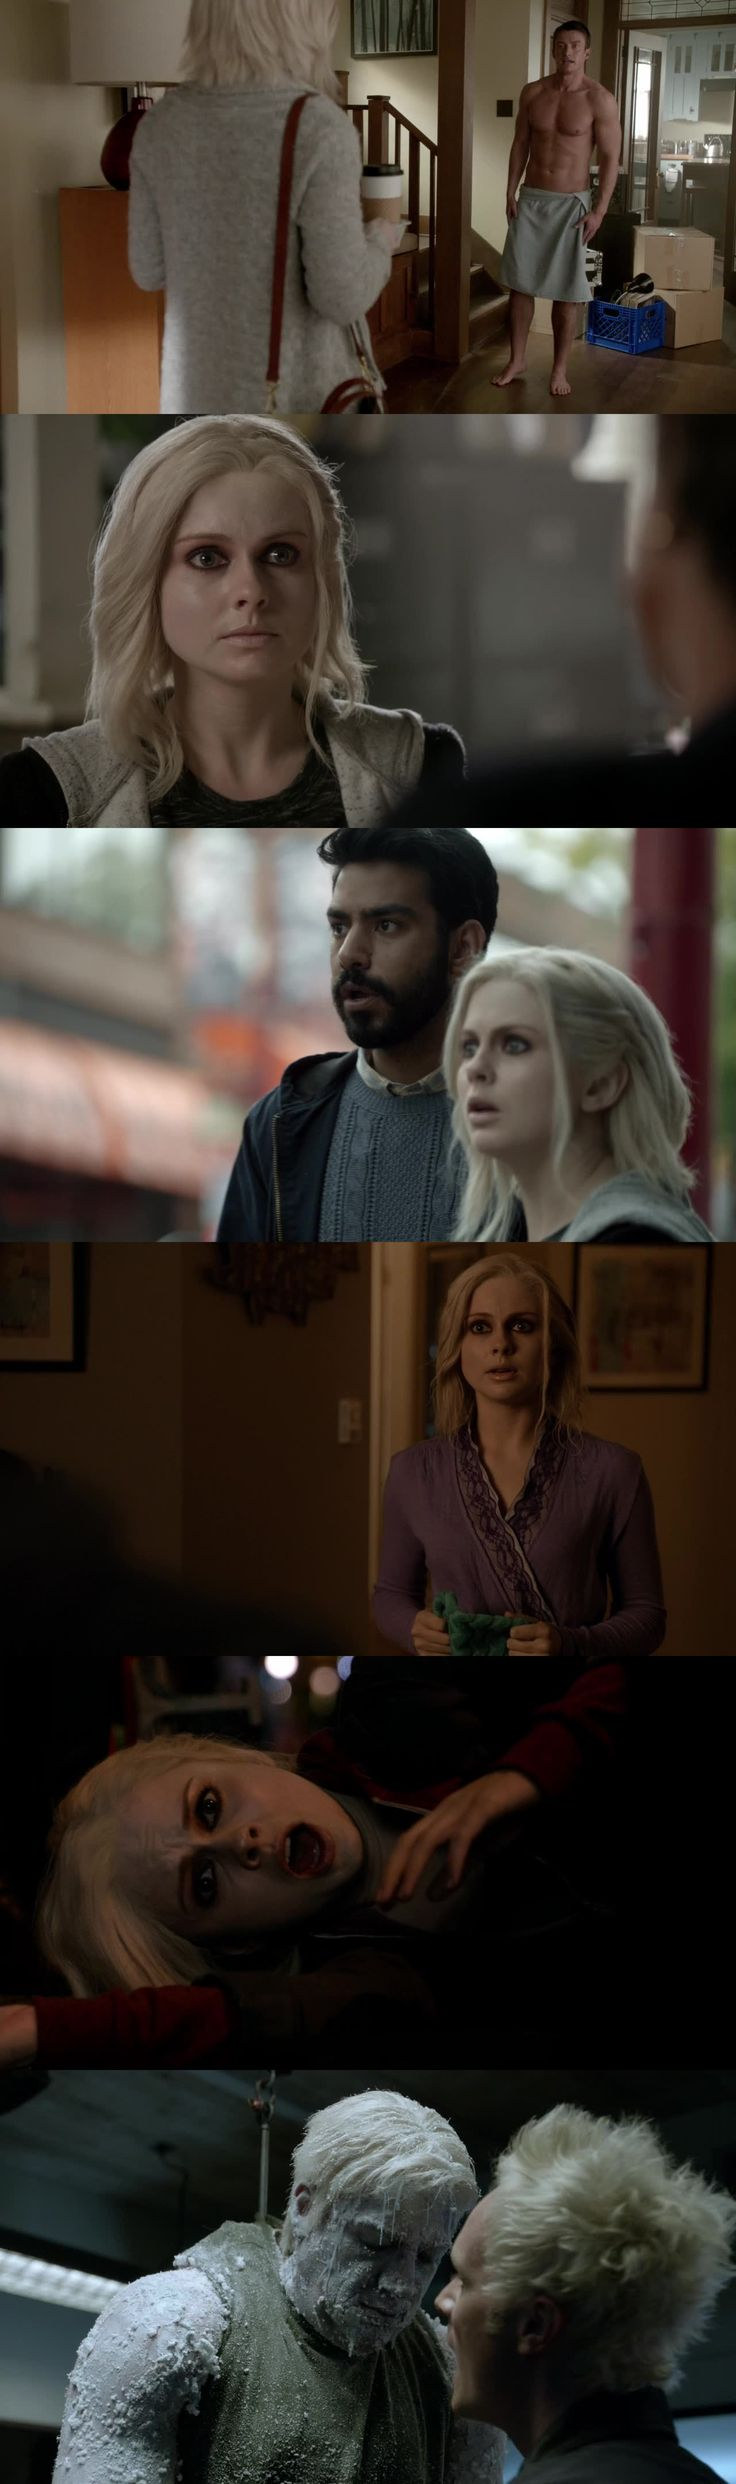 Watch iZombie S01E04 - Liv and Let Clive online | TVShow Time